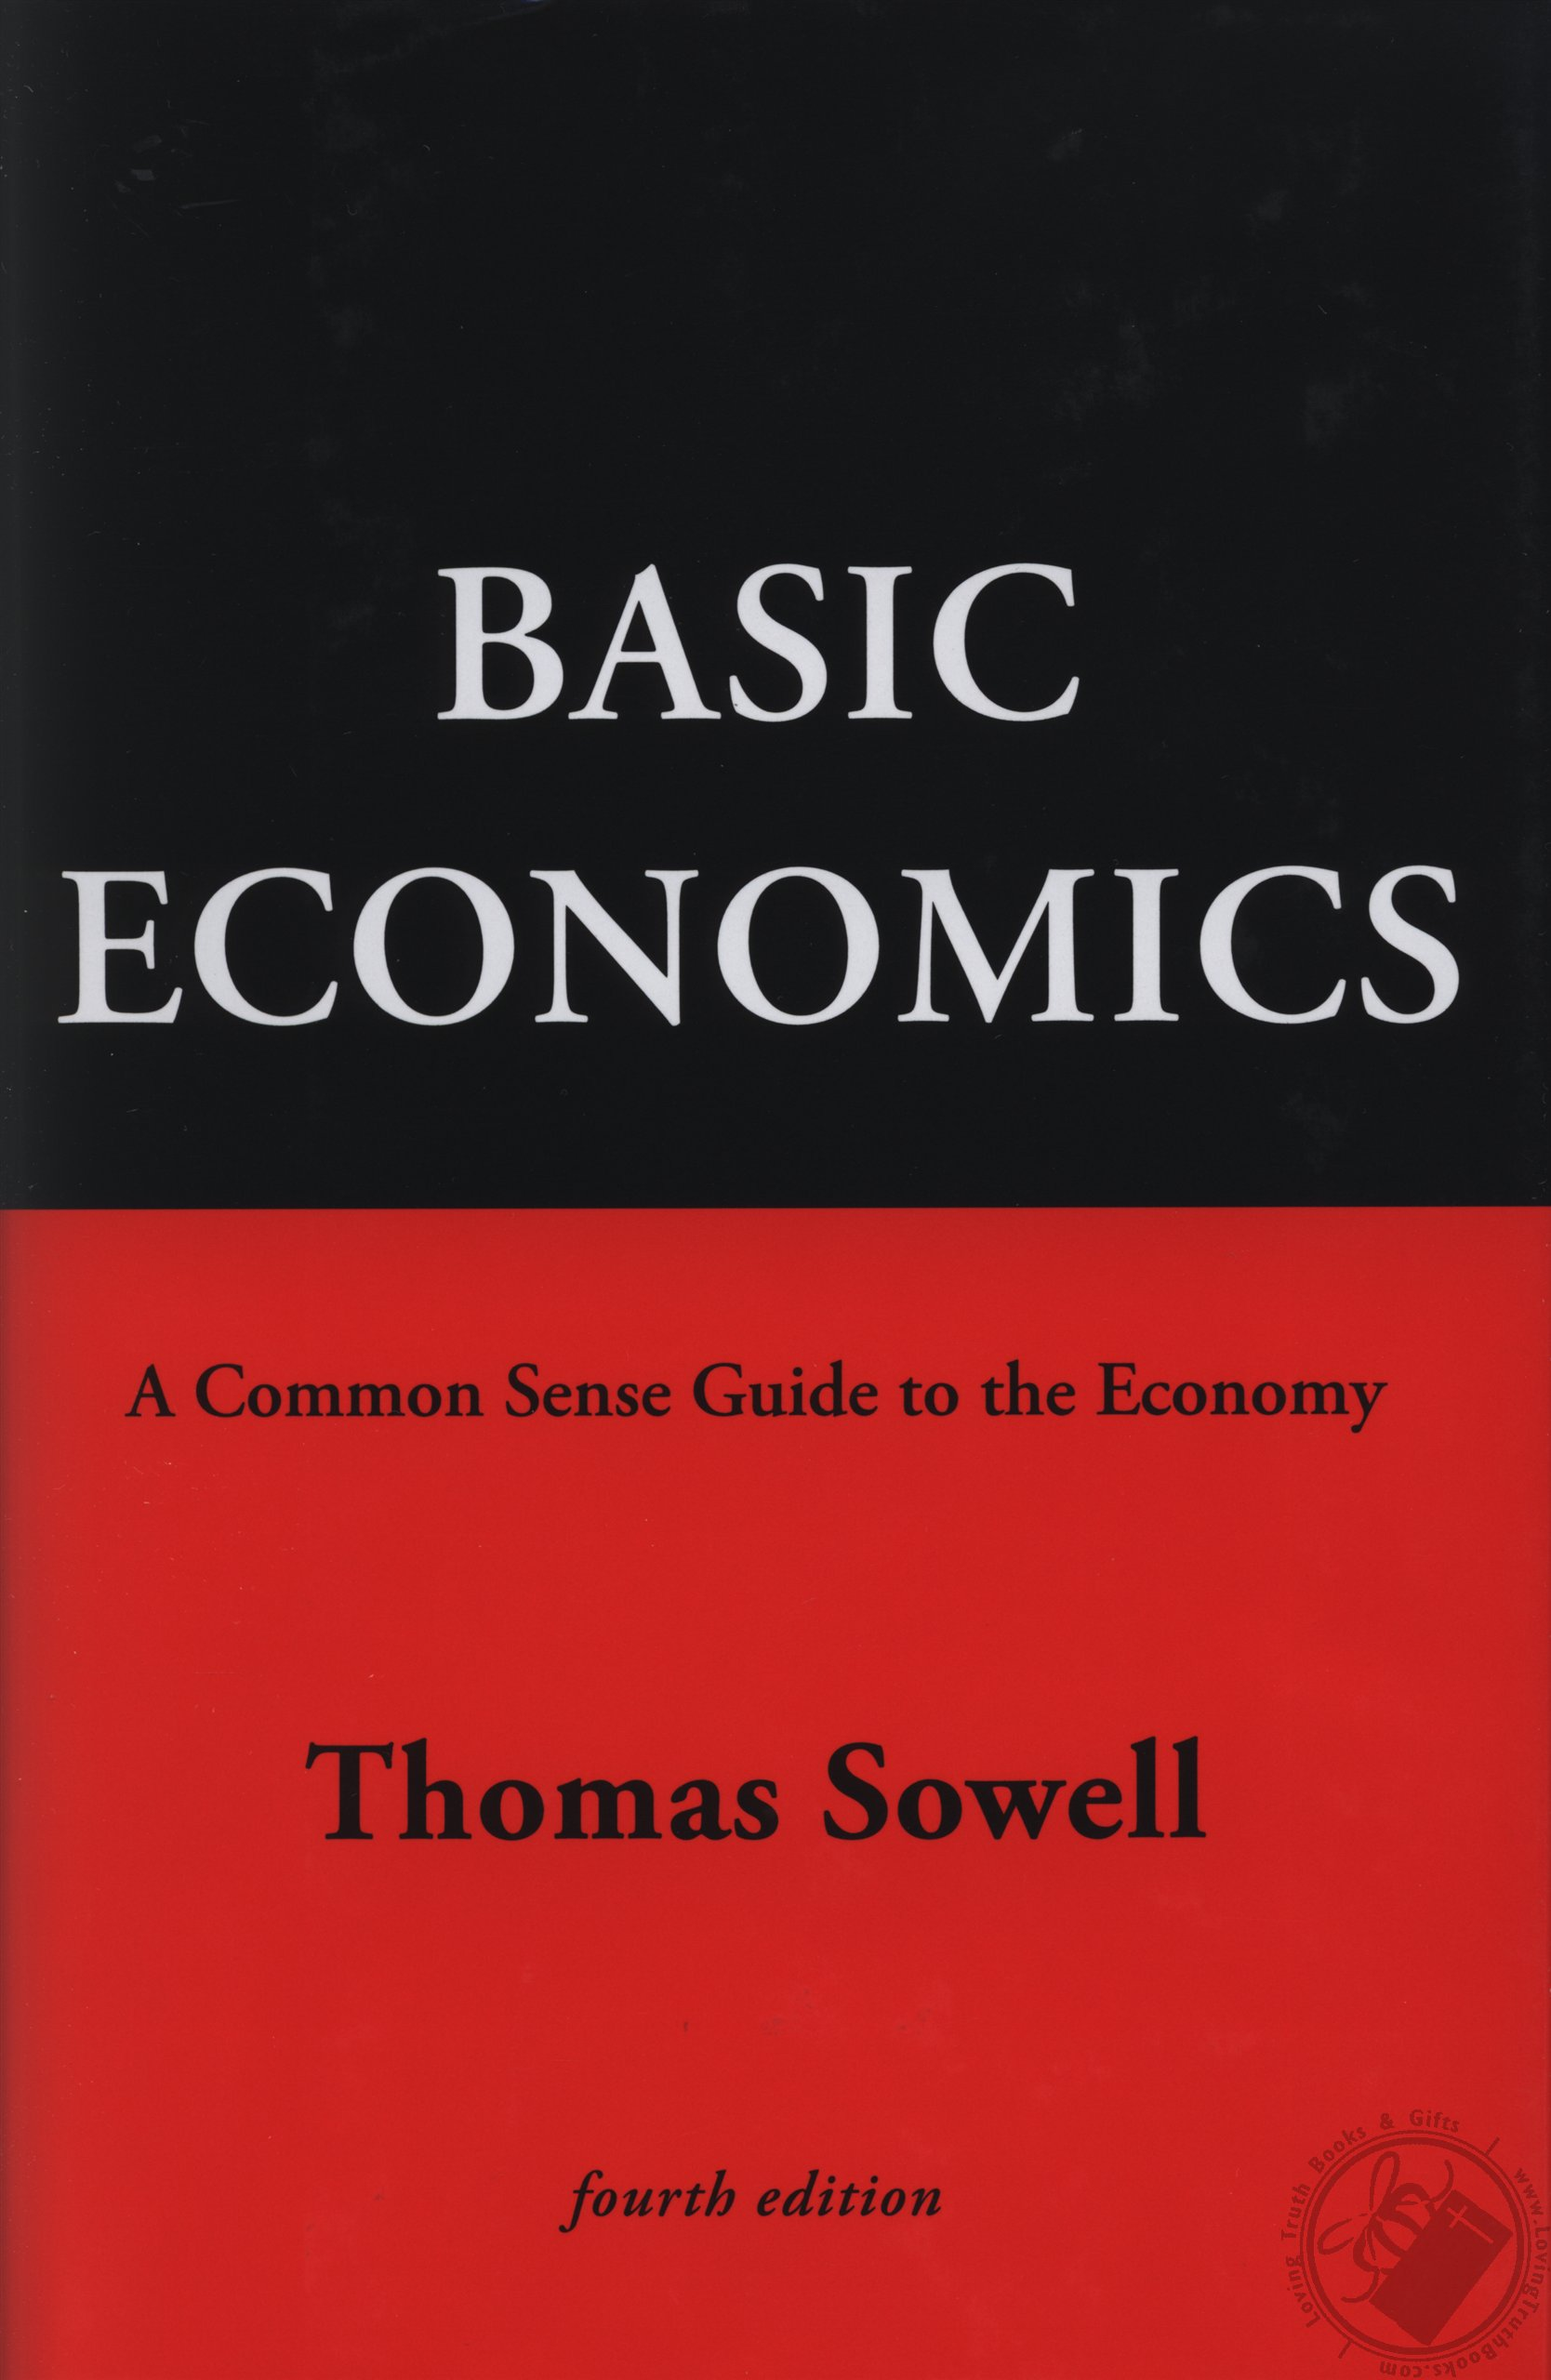 basic economics 4th ed a common sense guide to the economy by share others